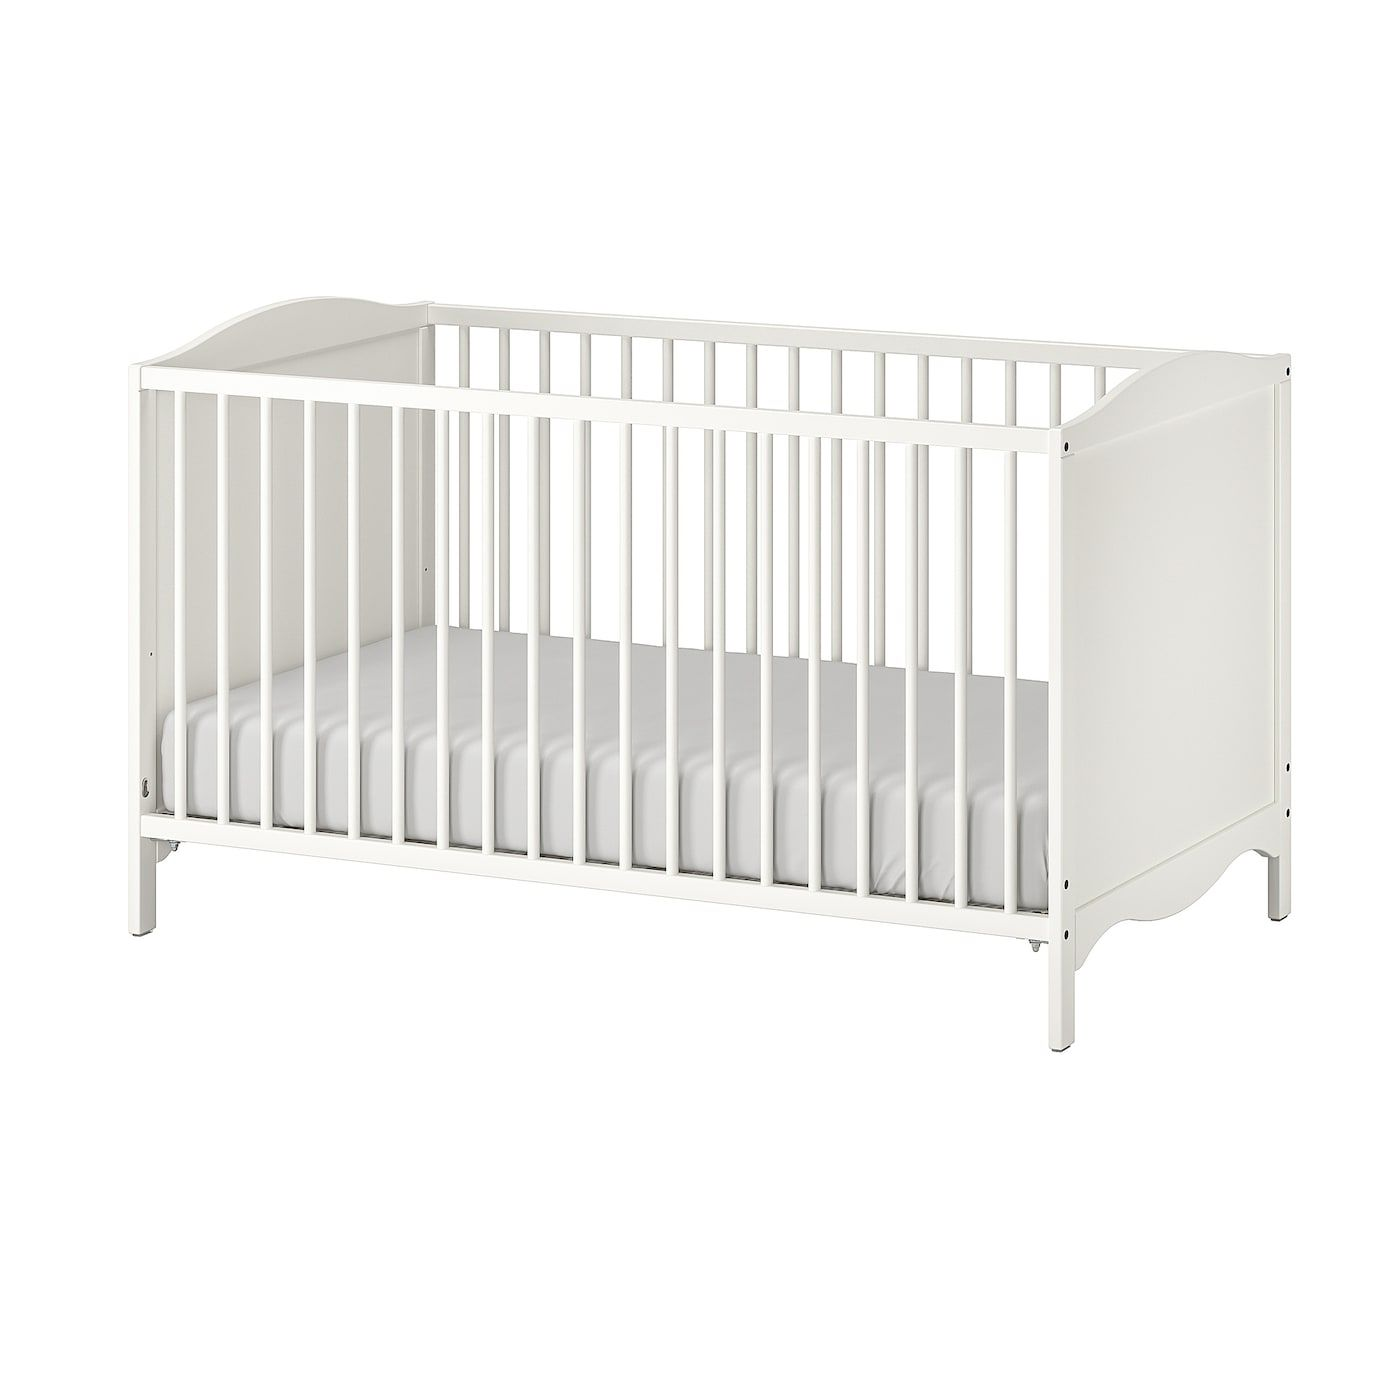 Ikea Smagora Cot In 2020 Ikea Cot Painted Beds